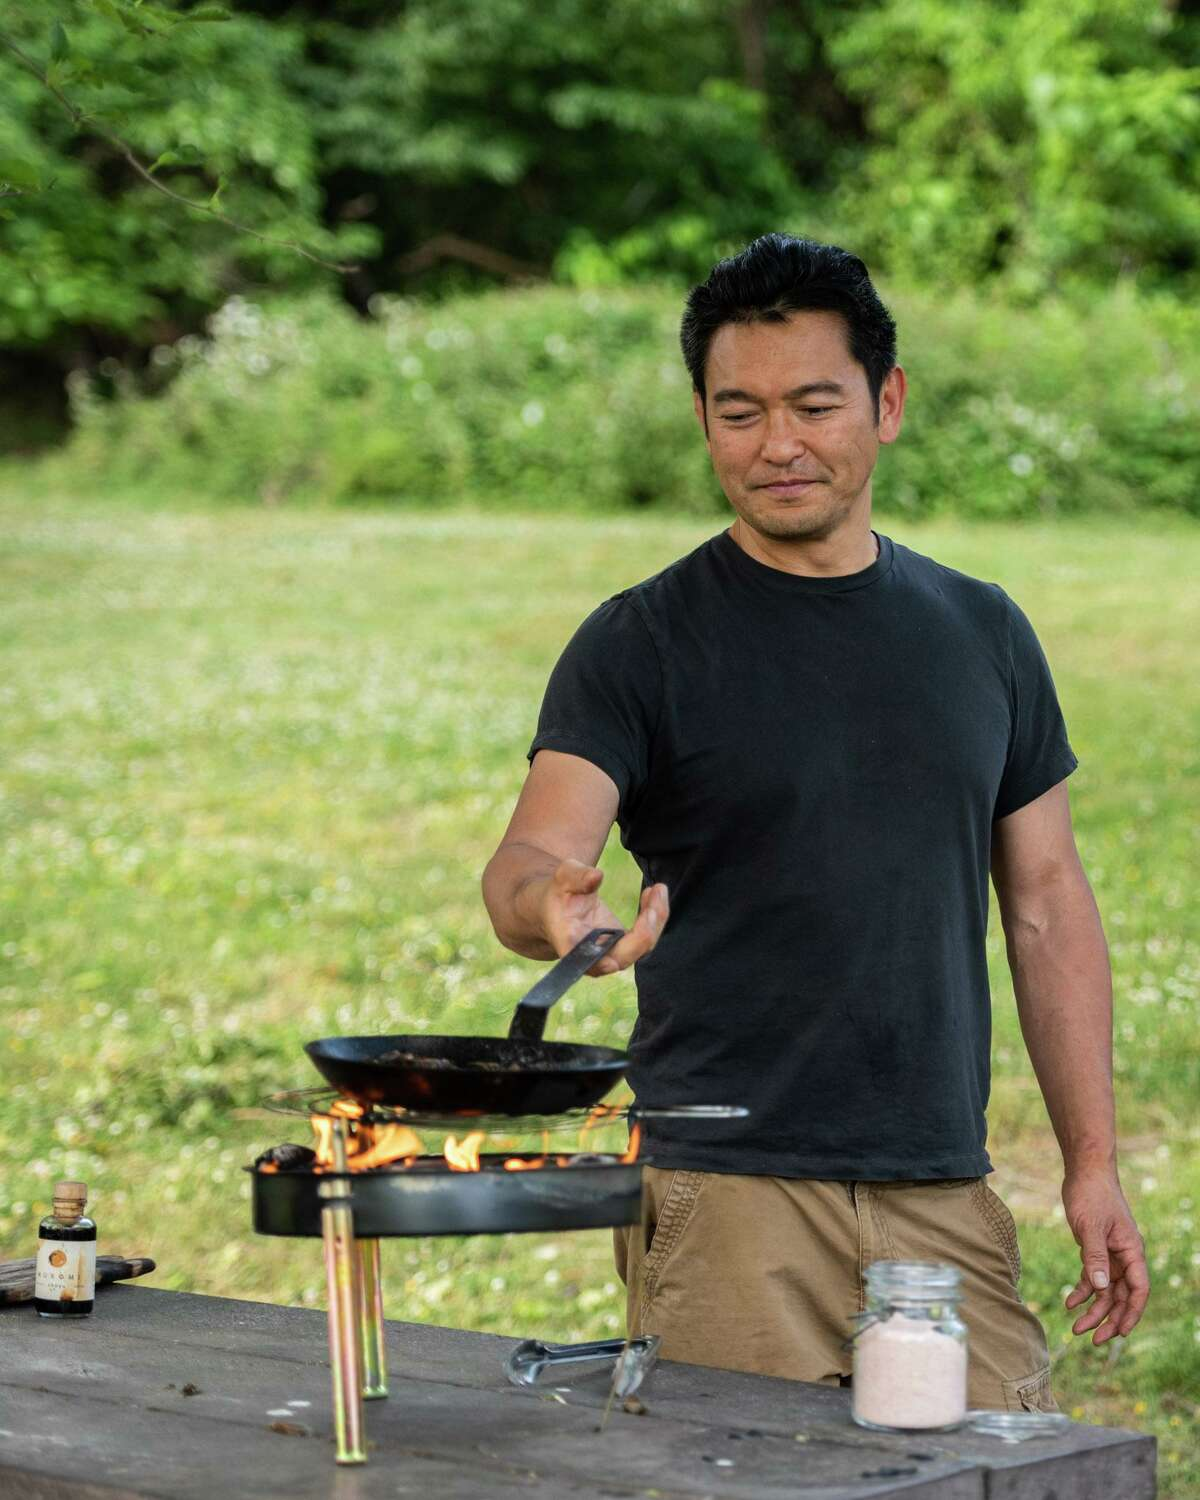 Bun Lai cooks cicadas at a pop-up event in Washington D.C. in May.